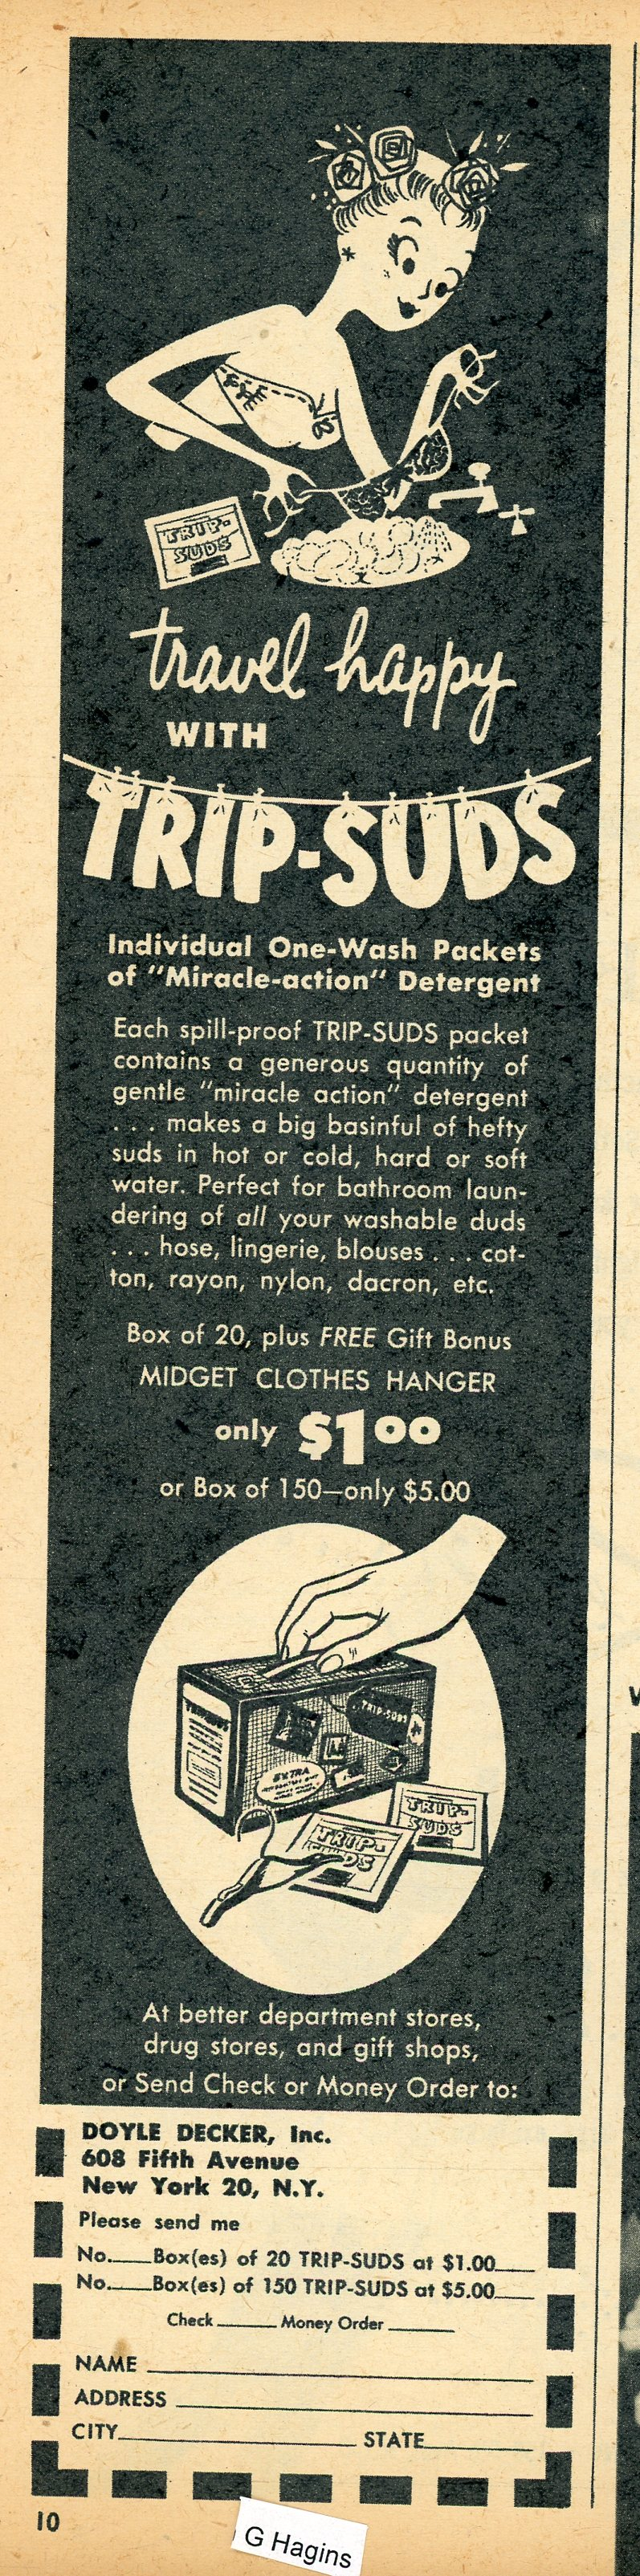 1955 ad. Hagins collection.